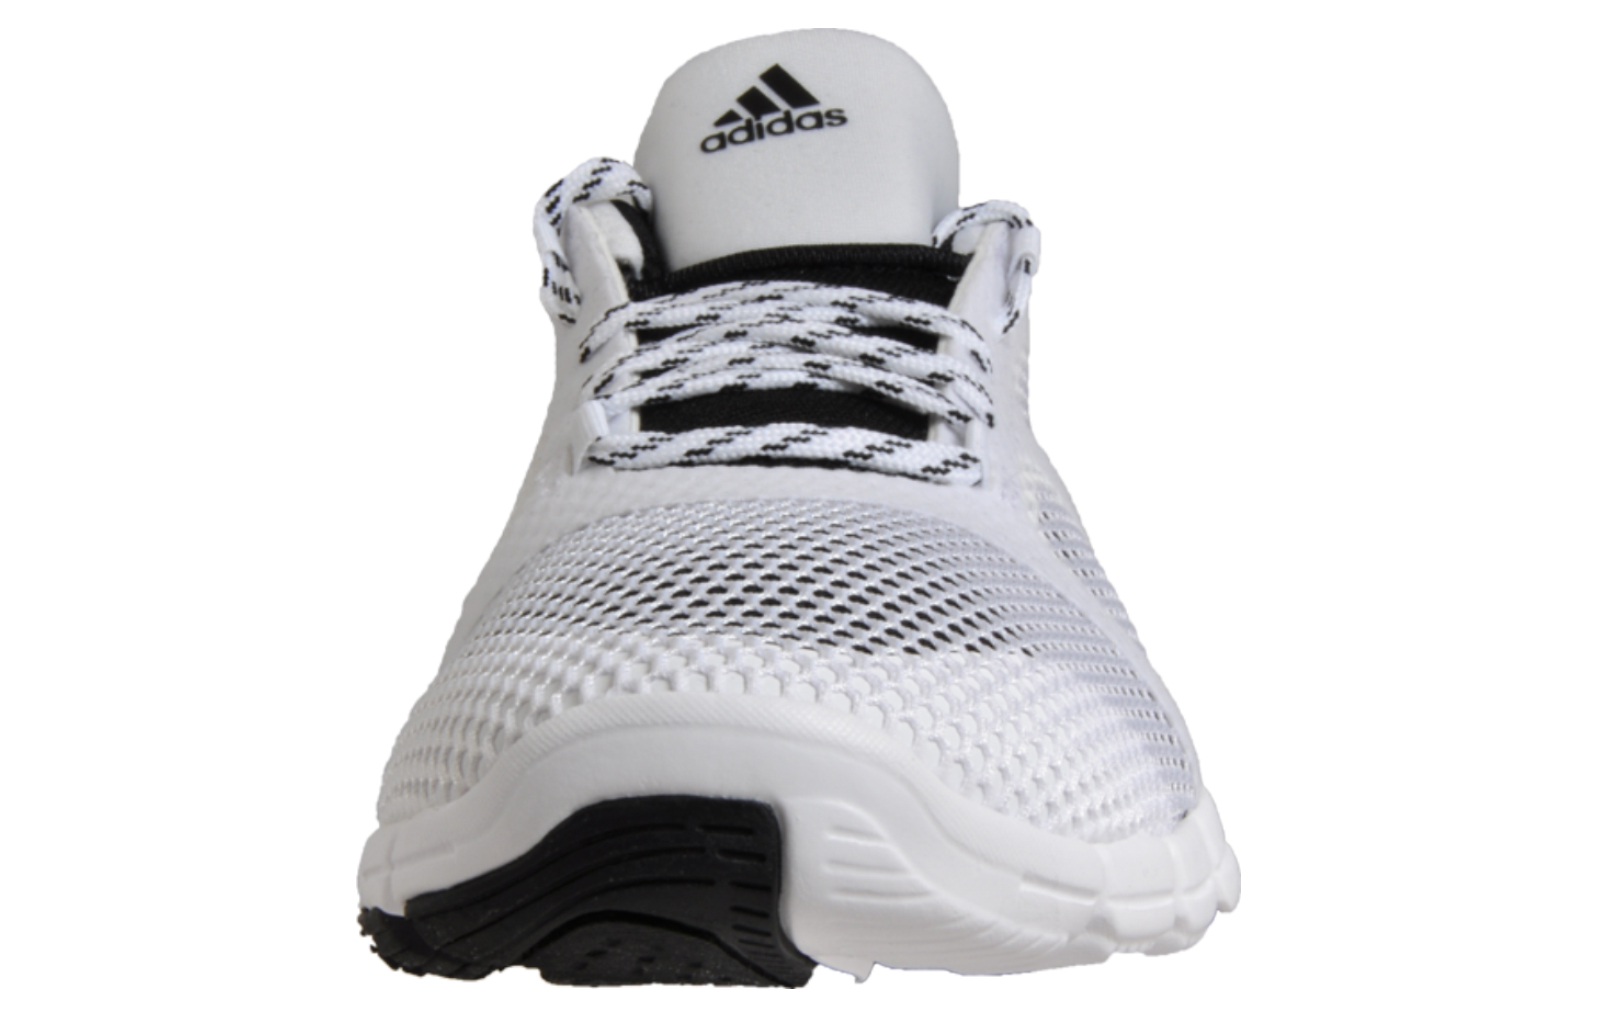 detailed look 6c9d0 9fb52 Adidas Adipure Flex Womens Jogging Fitness Gym Trainers White